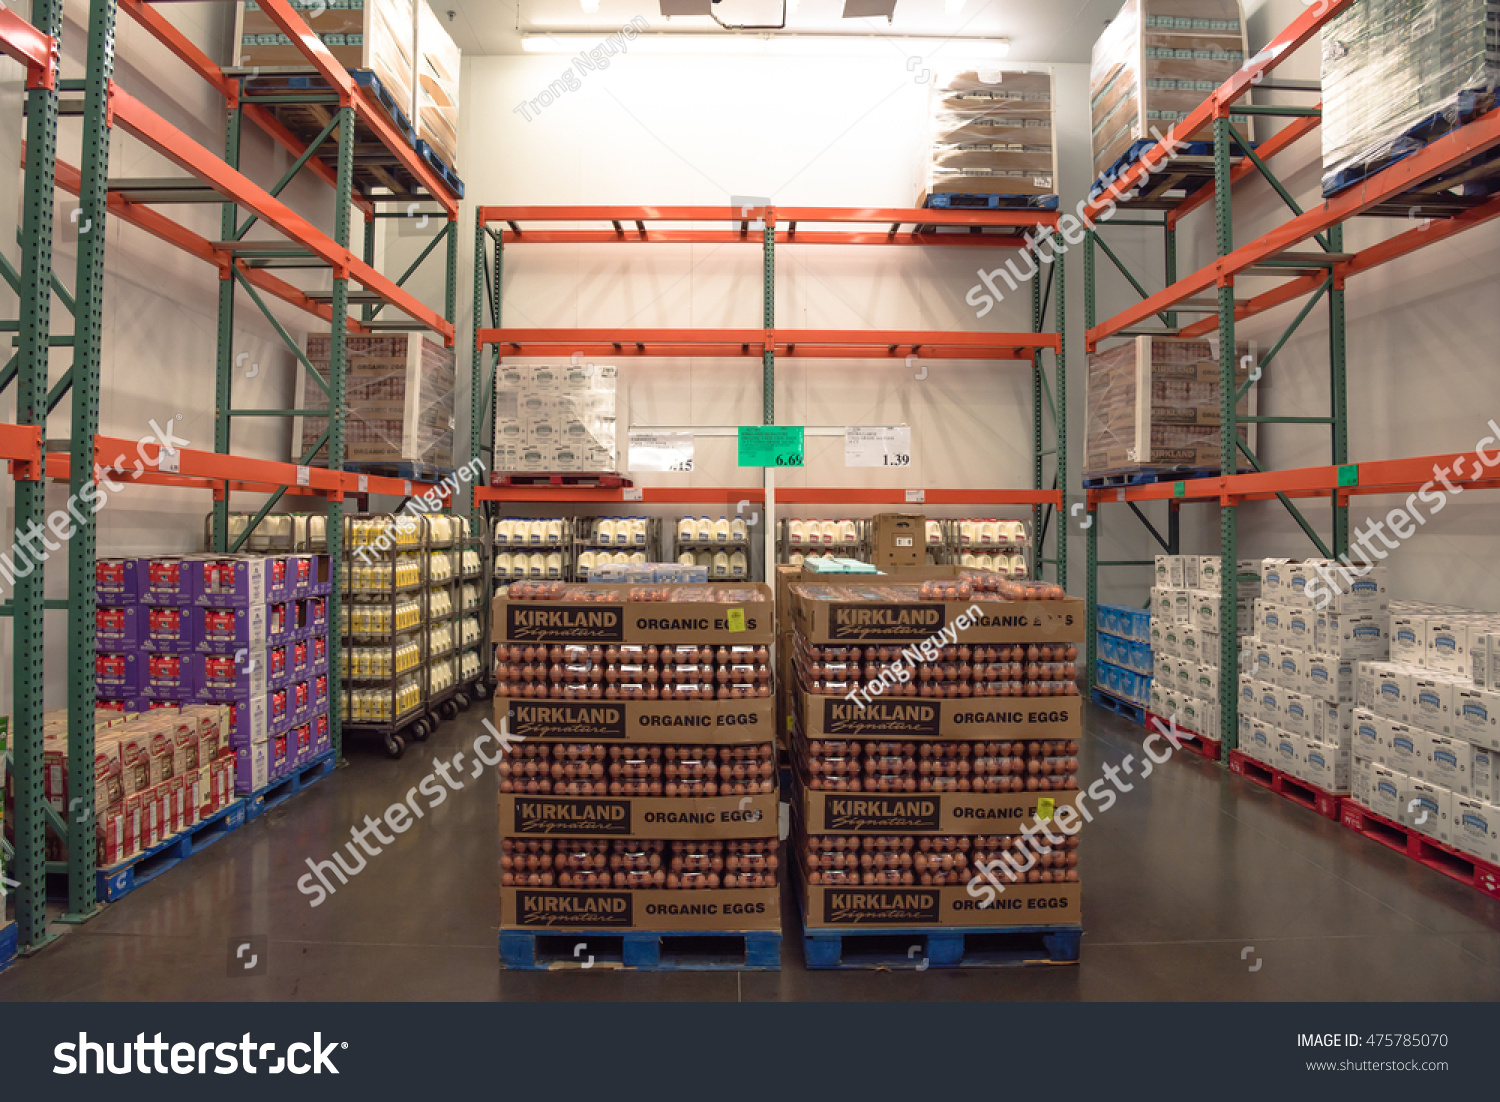 costco search photostok stock image images photos houston us aug 28 2016 fresh organic dairy products eggs and